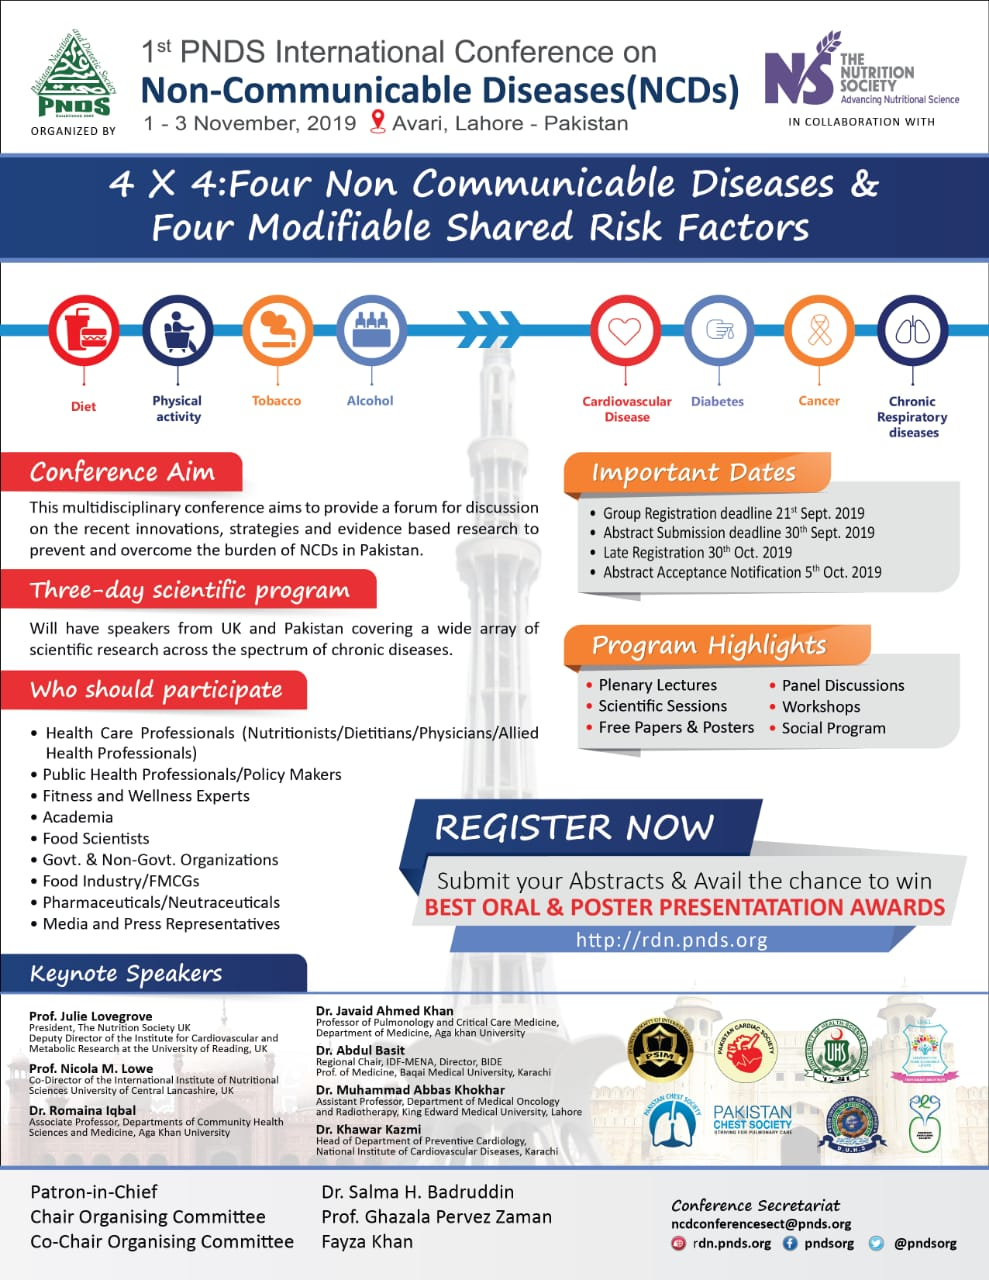 Second Announcement Ist PNDS Conference on NCDs 2019 Lahore Pakistan